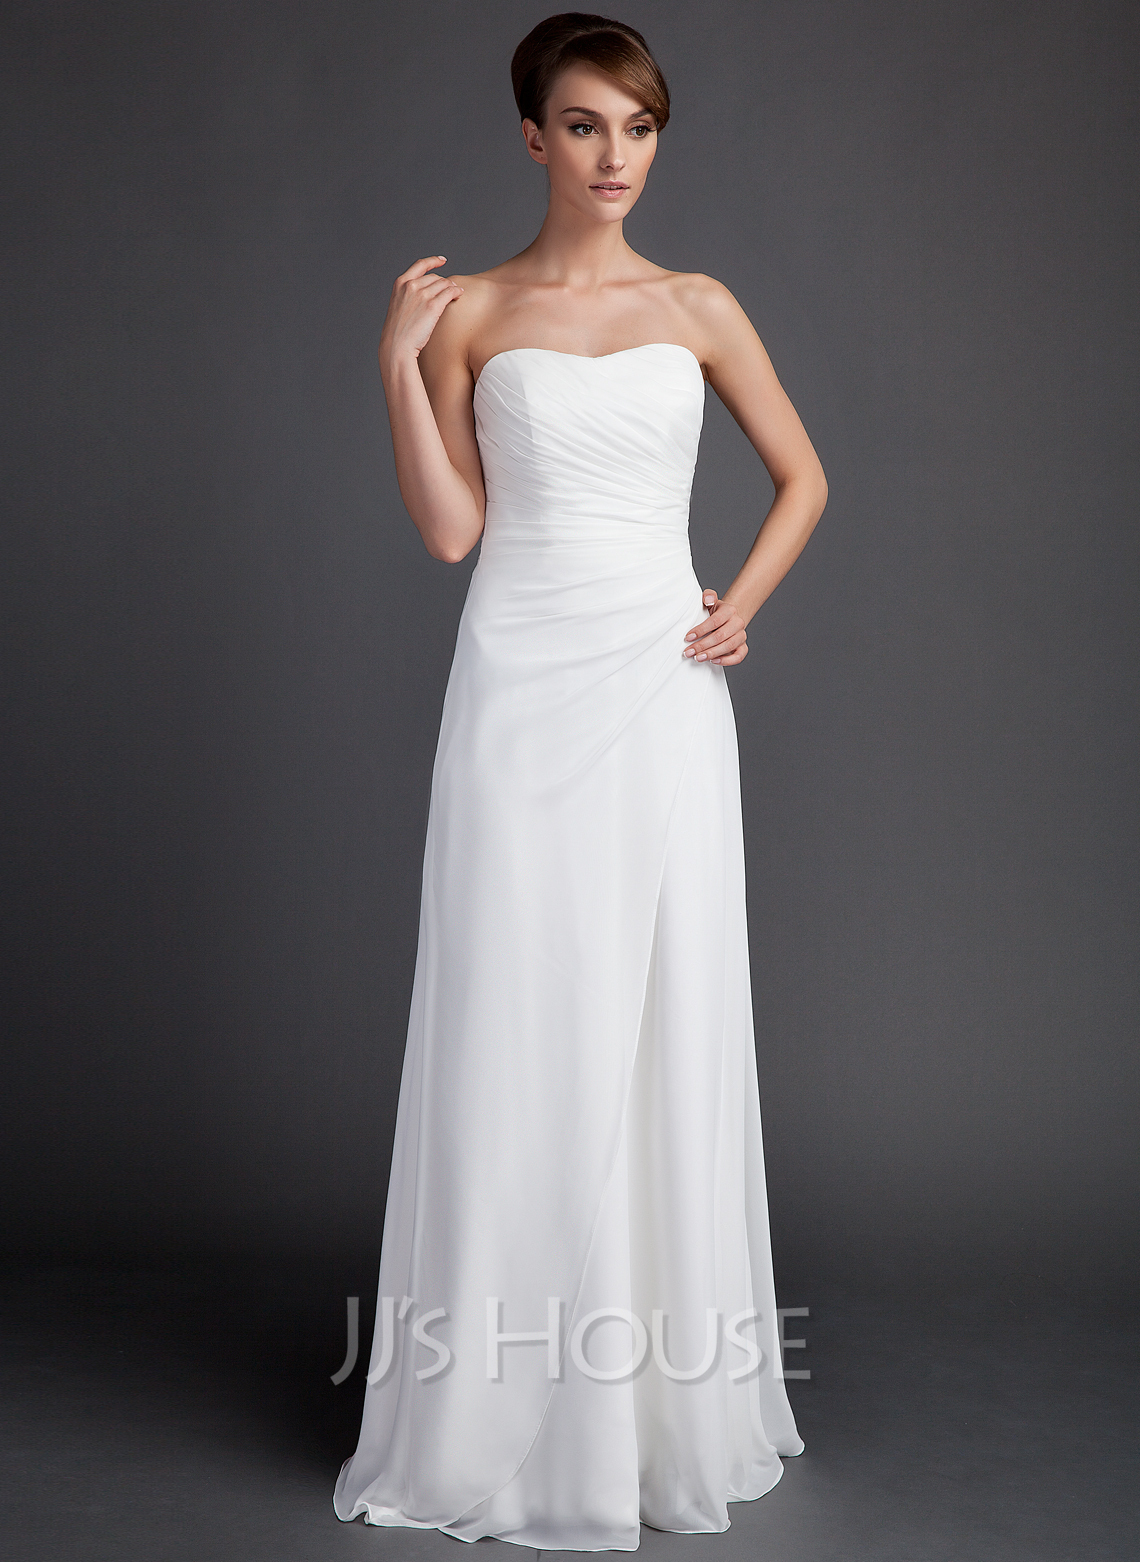 Sheath/Column Sweetheart Sweep Train Chiffon Wedding Dress With Ruffle